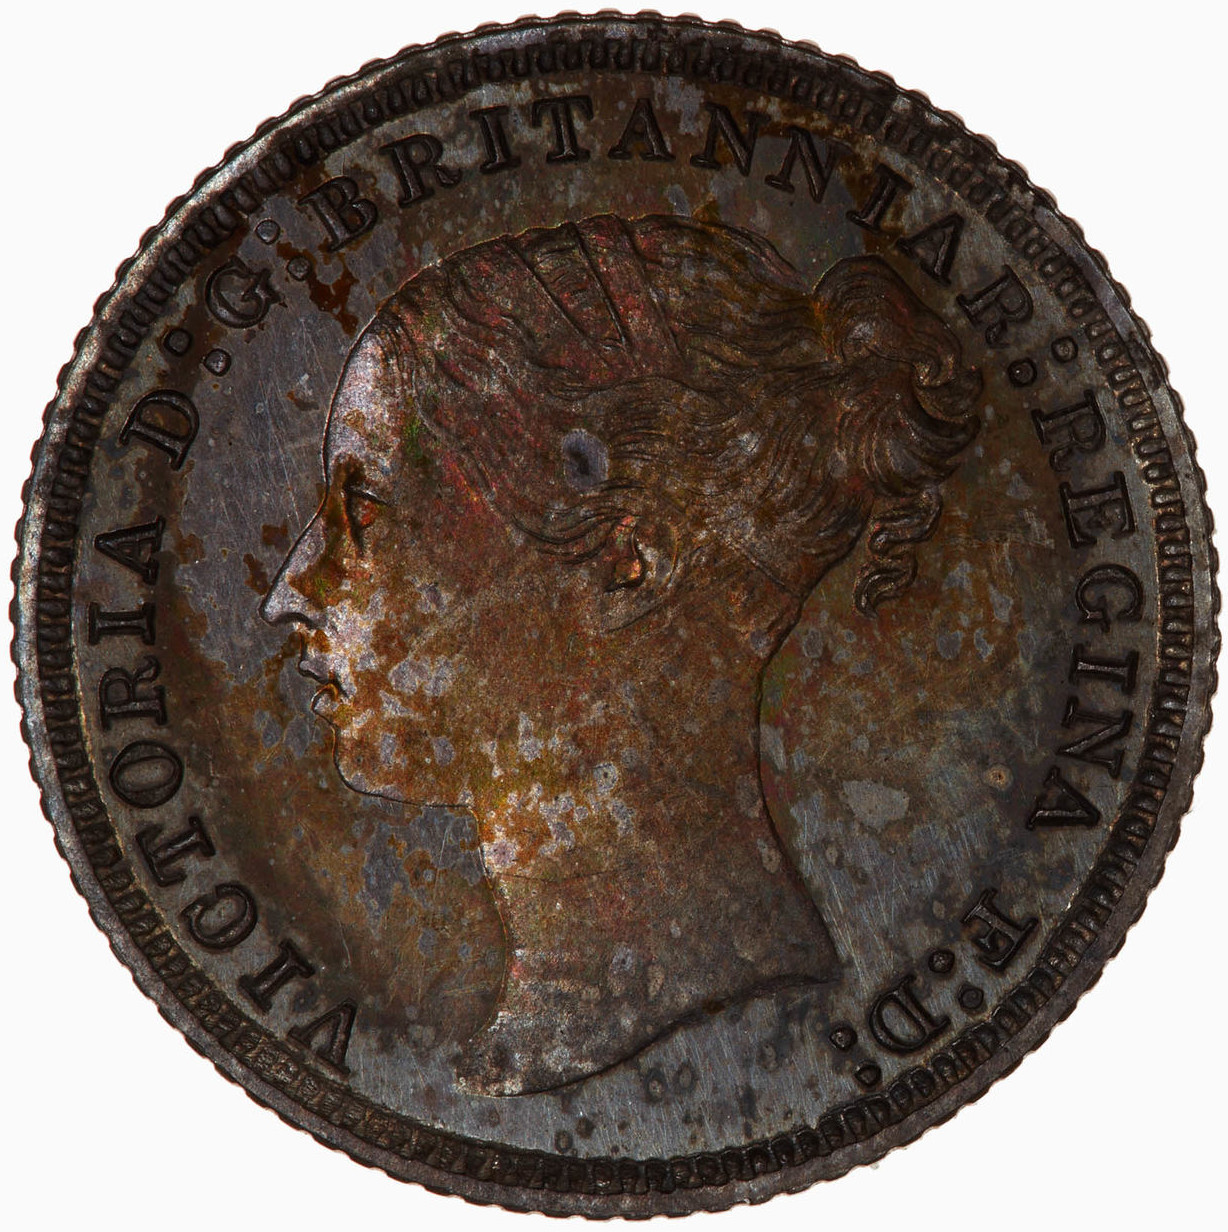 Fourpence 1857 (Proof only): Photo Proof Coin - Groat, Queen Victoria, Great Britain, 1857